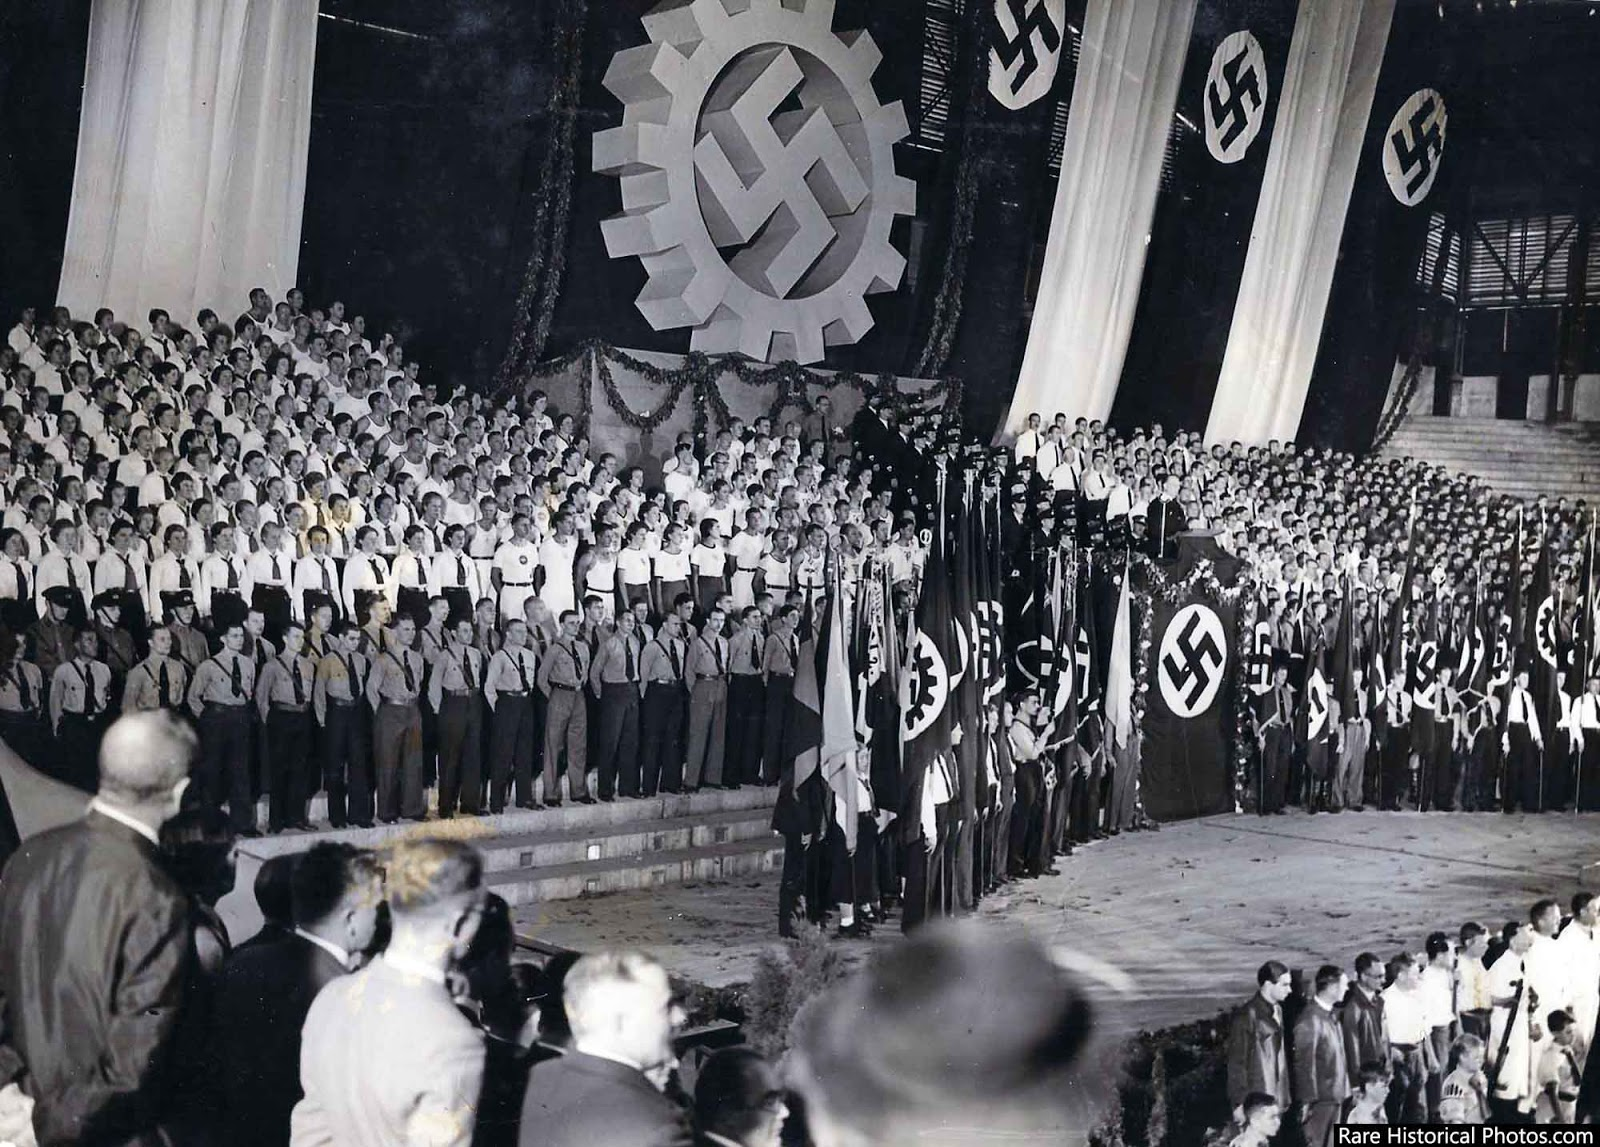 Argentine fascist youth - the Alianza de Juventud Nacionalista - were conspicuous in their gray shirts and Sam Browne belts.